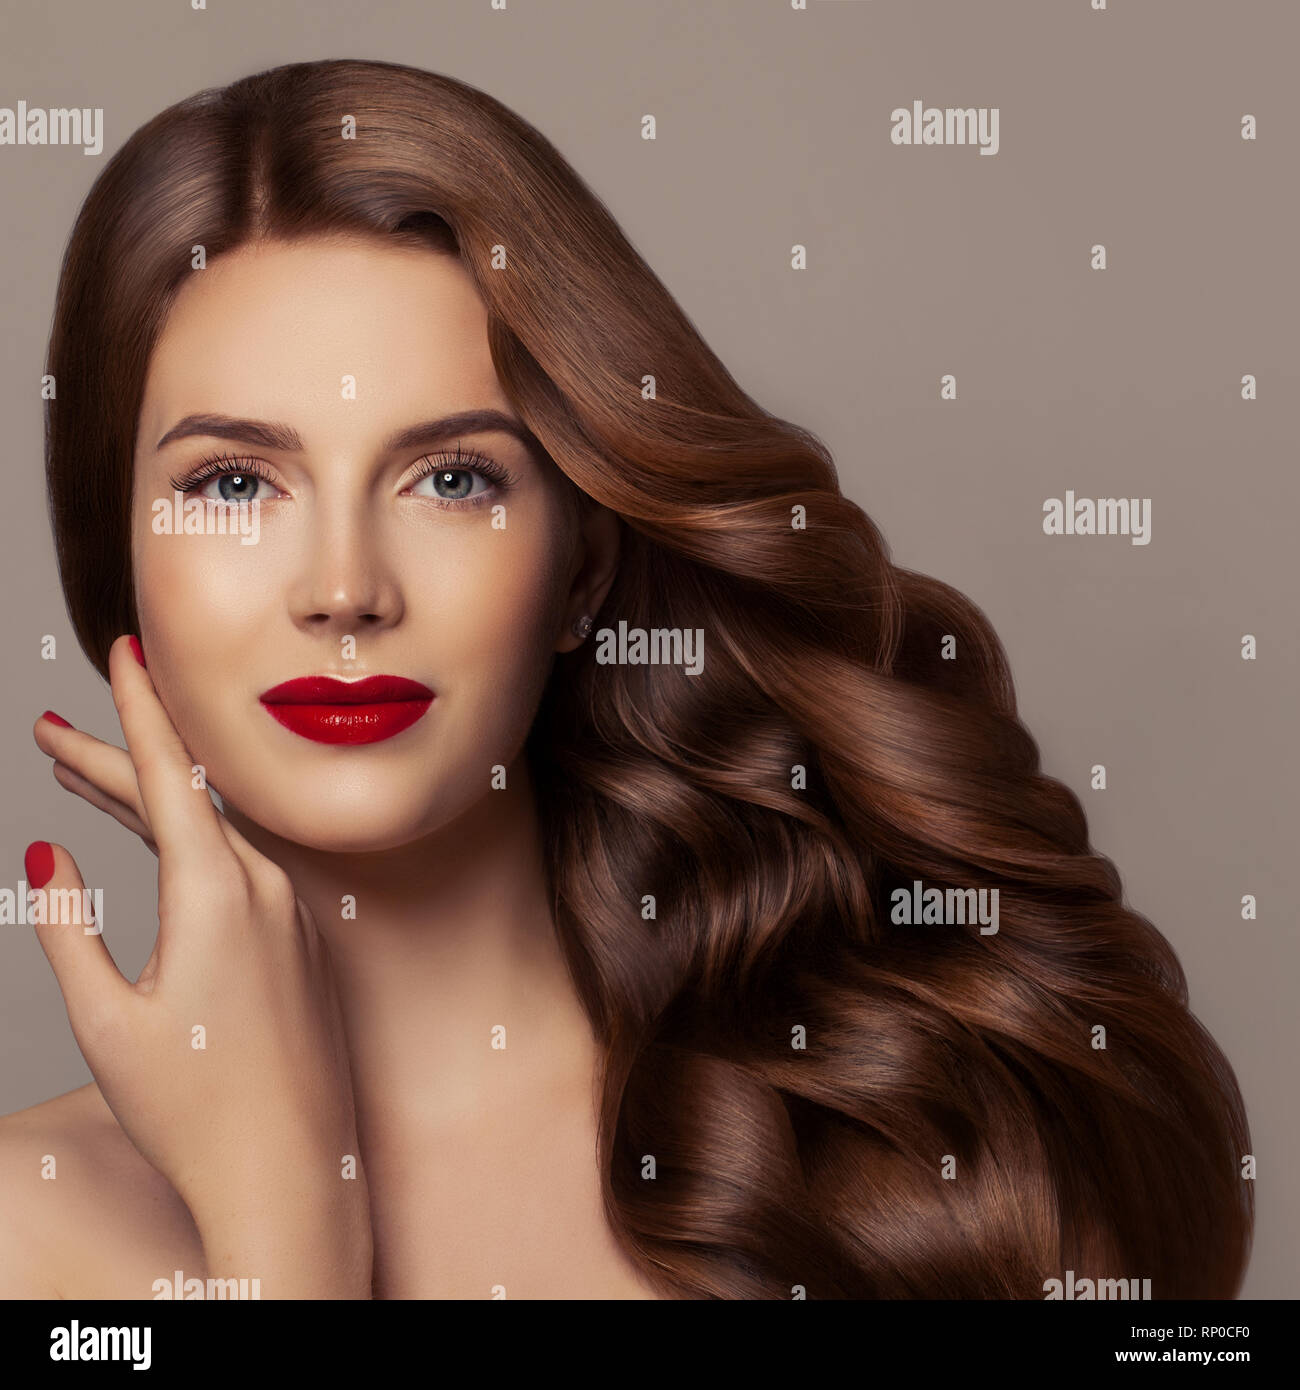 Redhead woman face. Stylish model girl with ginger curly hair. Hair care concept - Stock Image